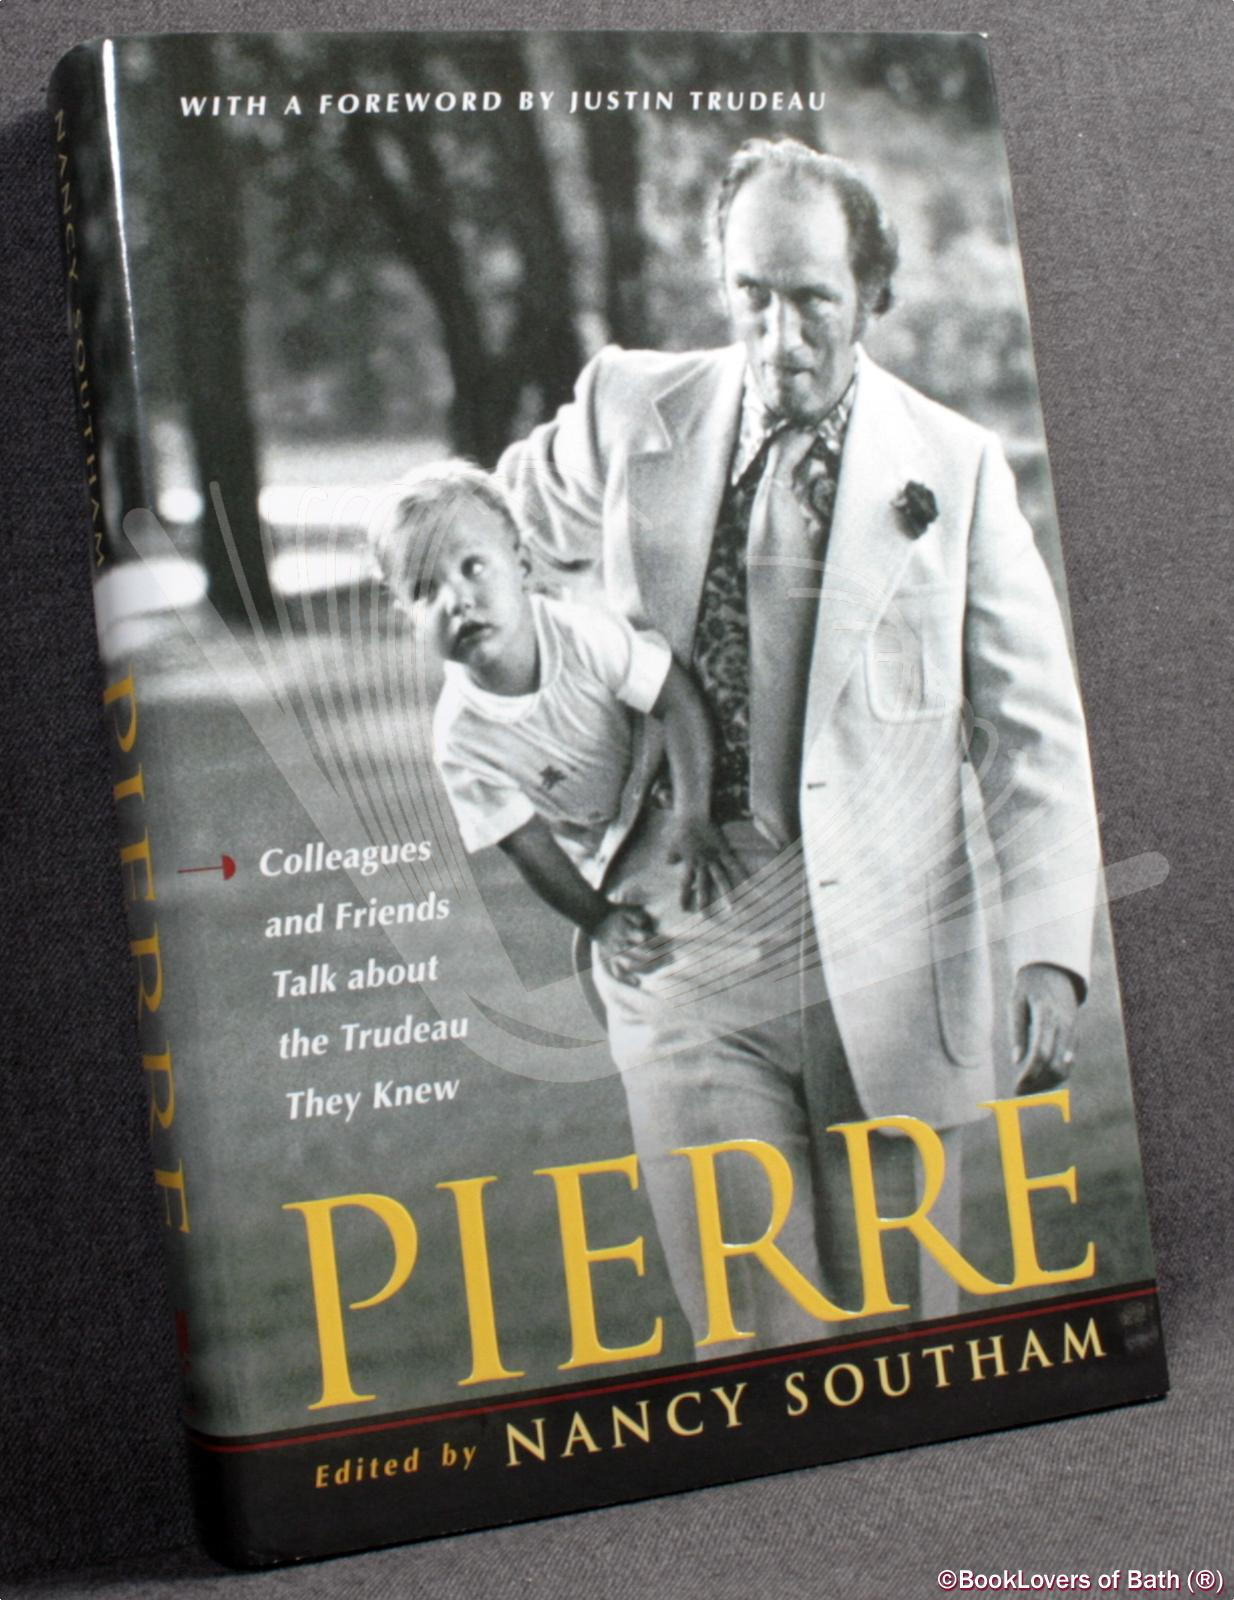 Pierre: Colleagues and Friends Talk About the Trudeau They Knew - Edited by Nancy Southam